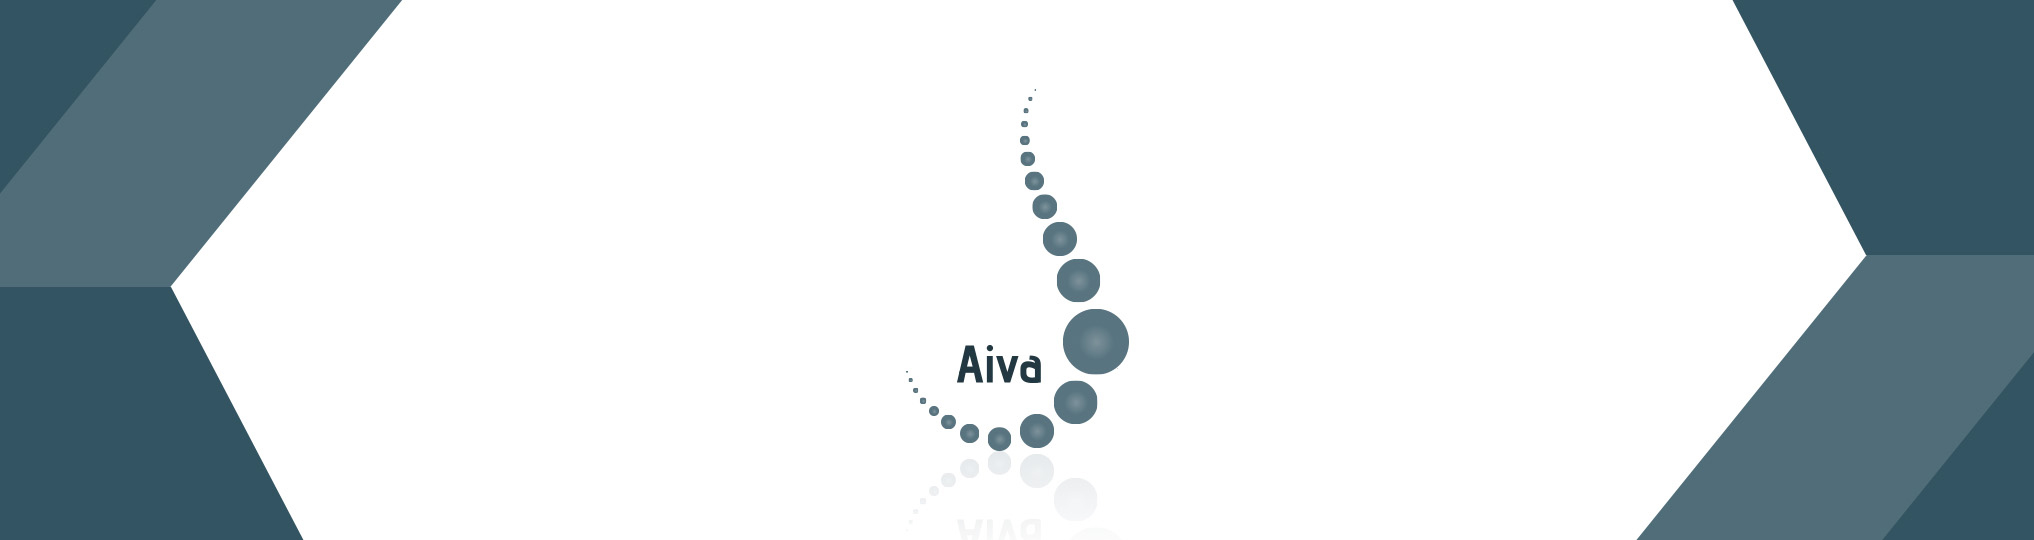 Mineral water - Aiva